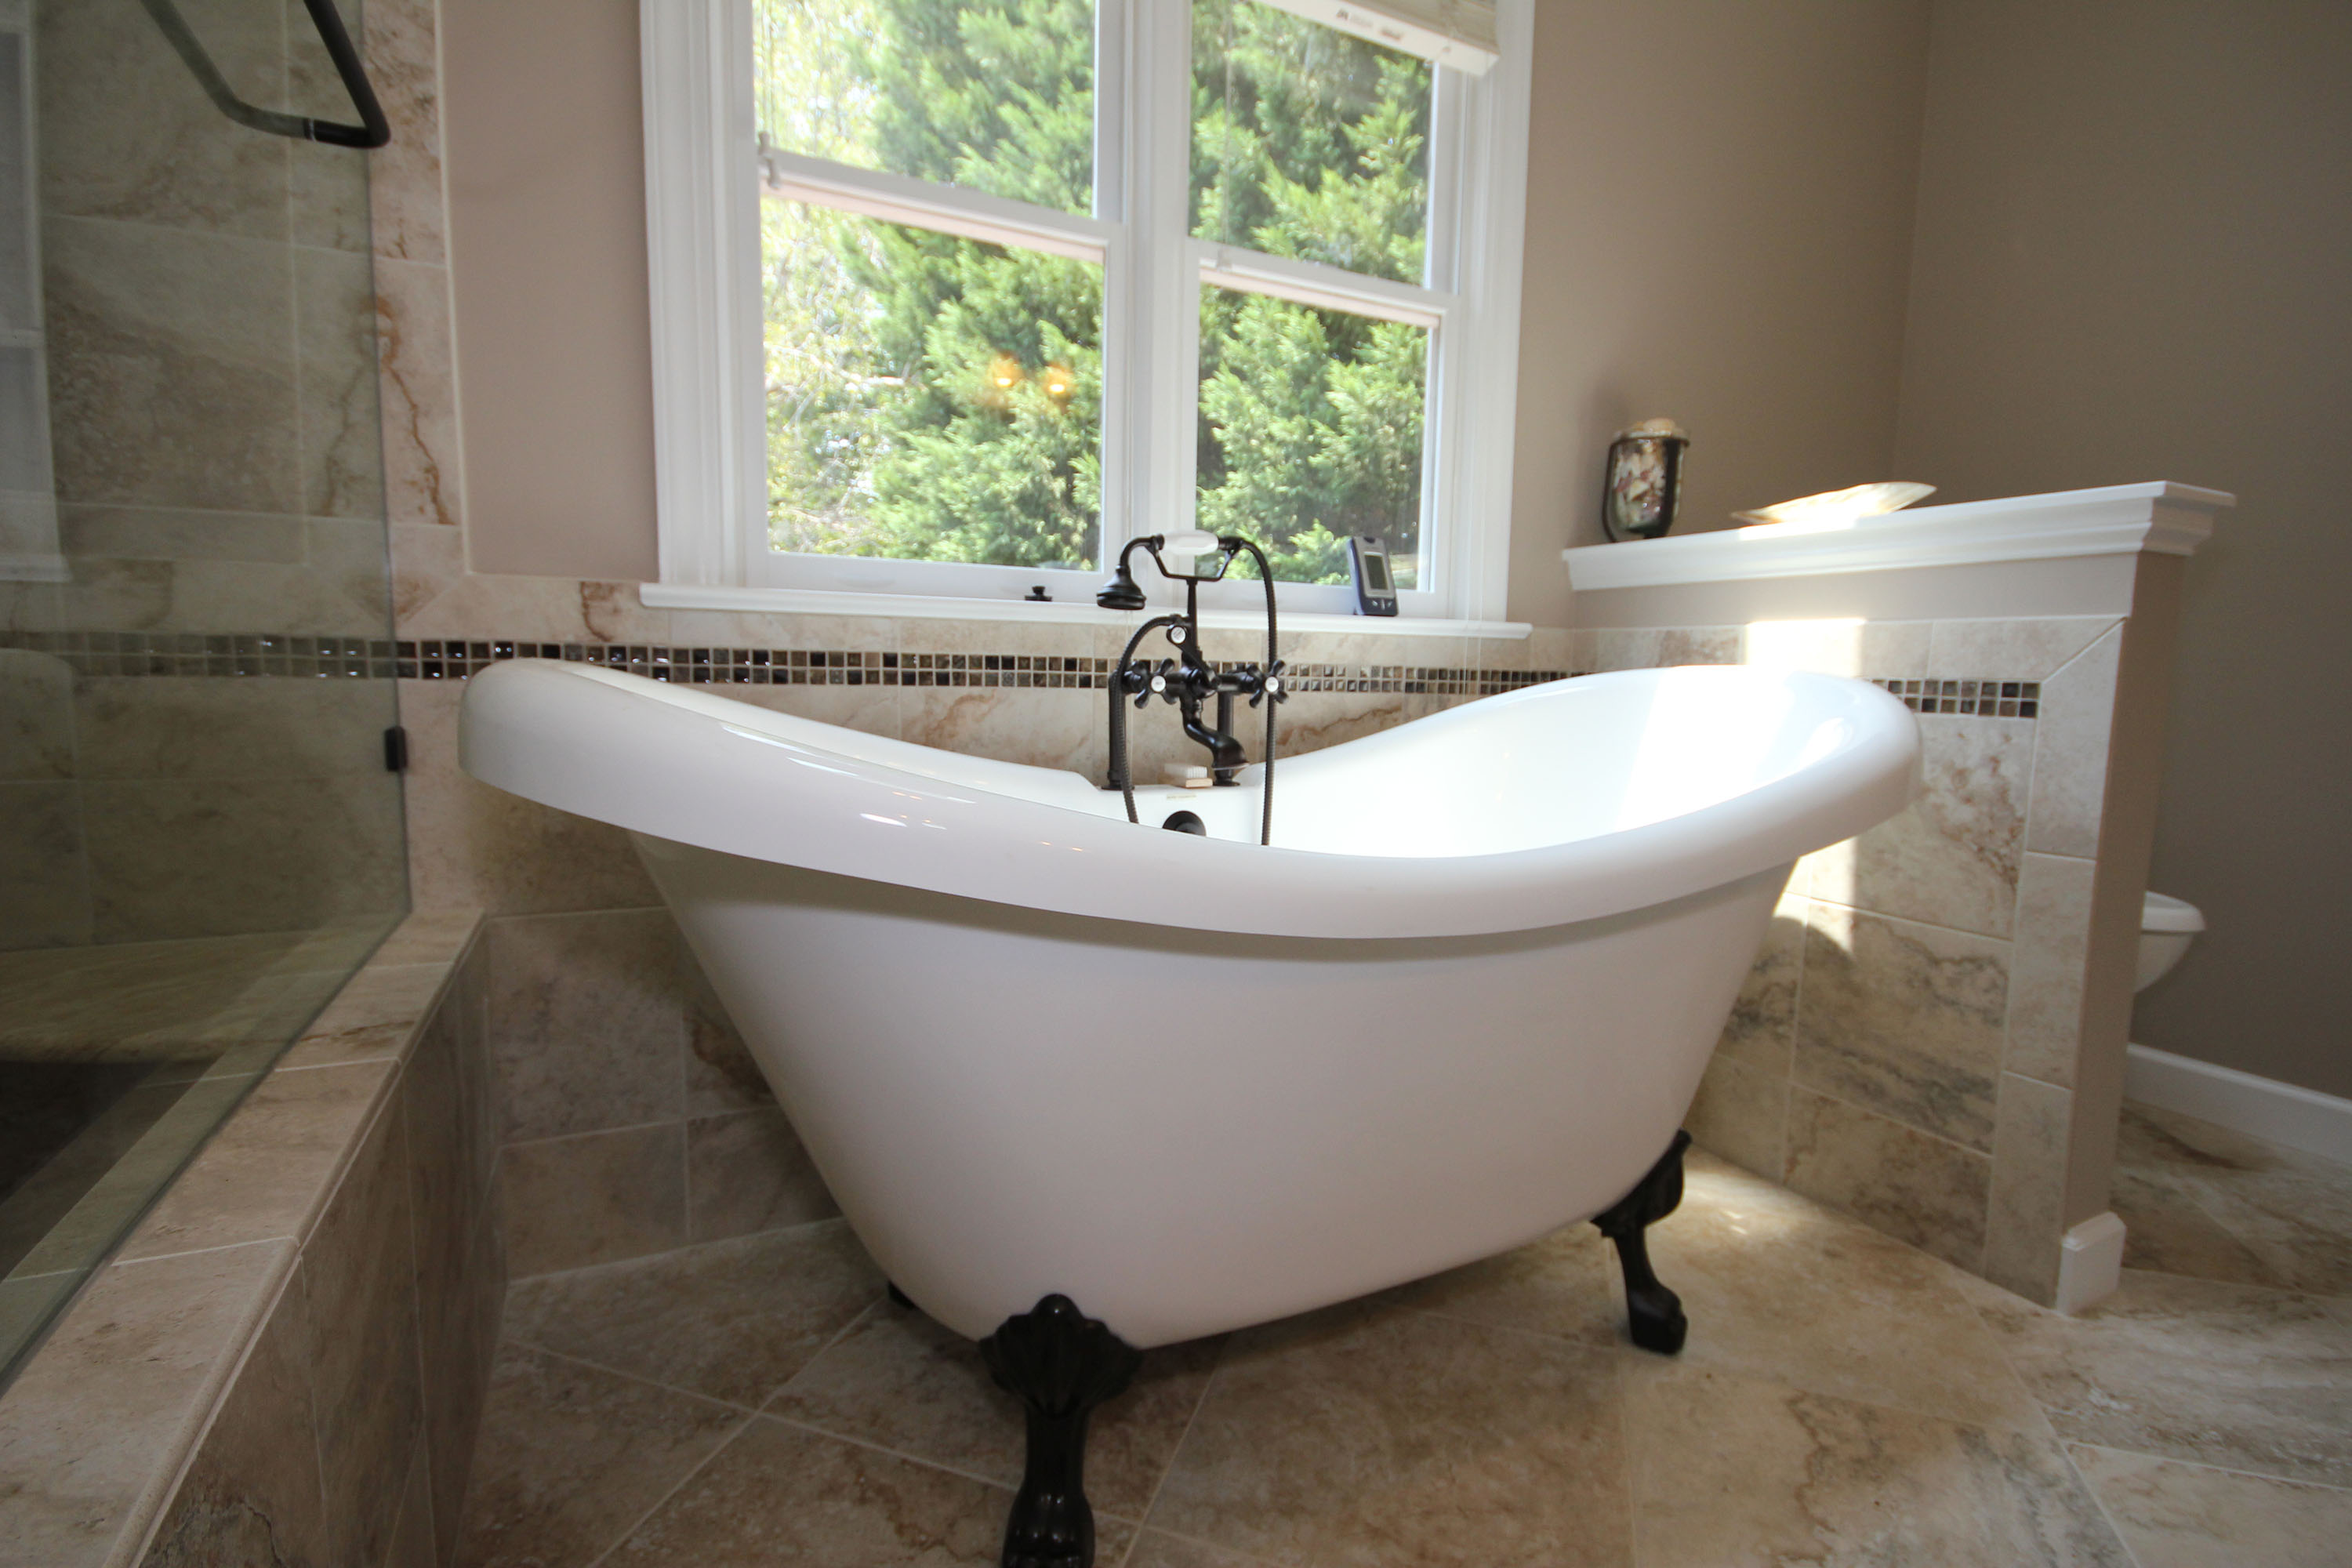 Freestanding Bathtubs By Cary Bathroom Remodeling Portofino Tile - Bathroom remodel raleigh